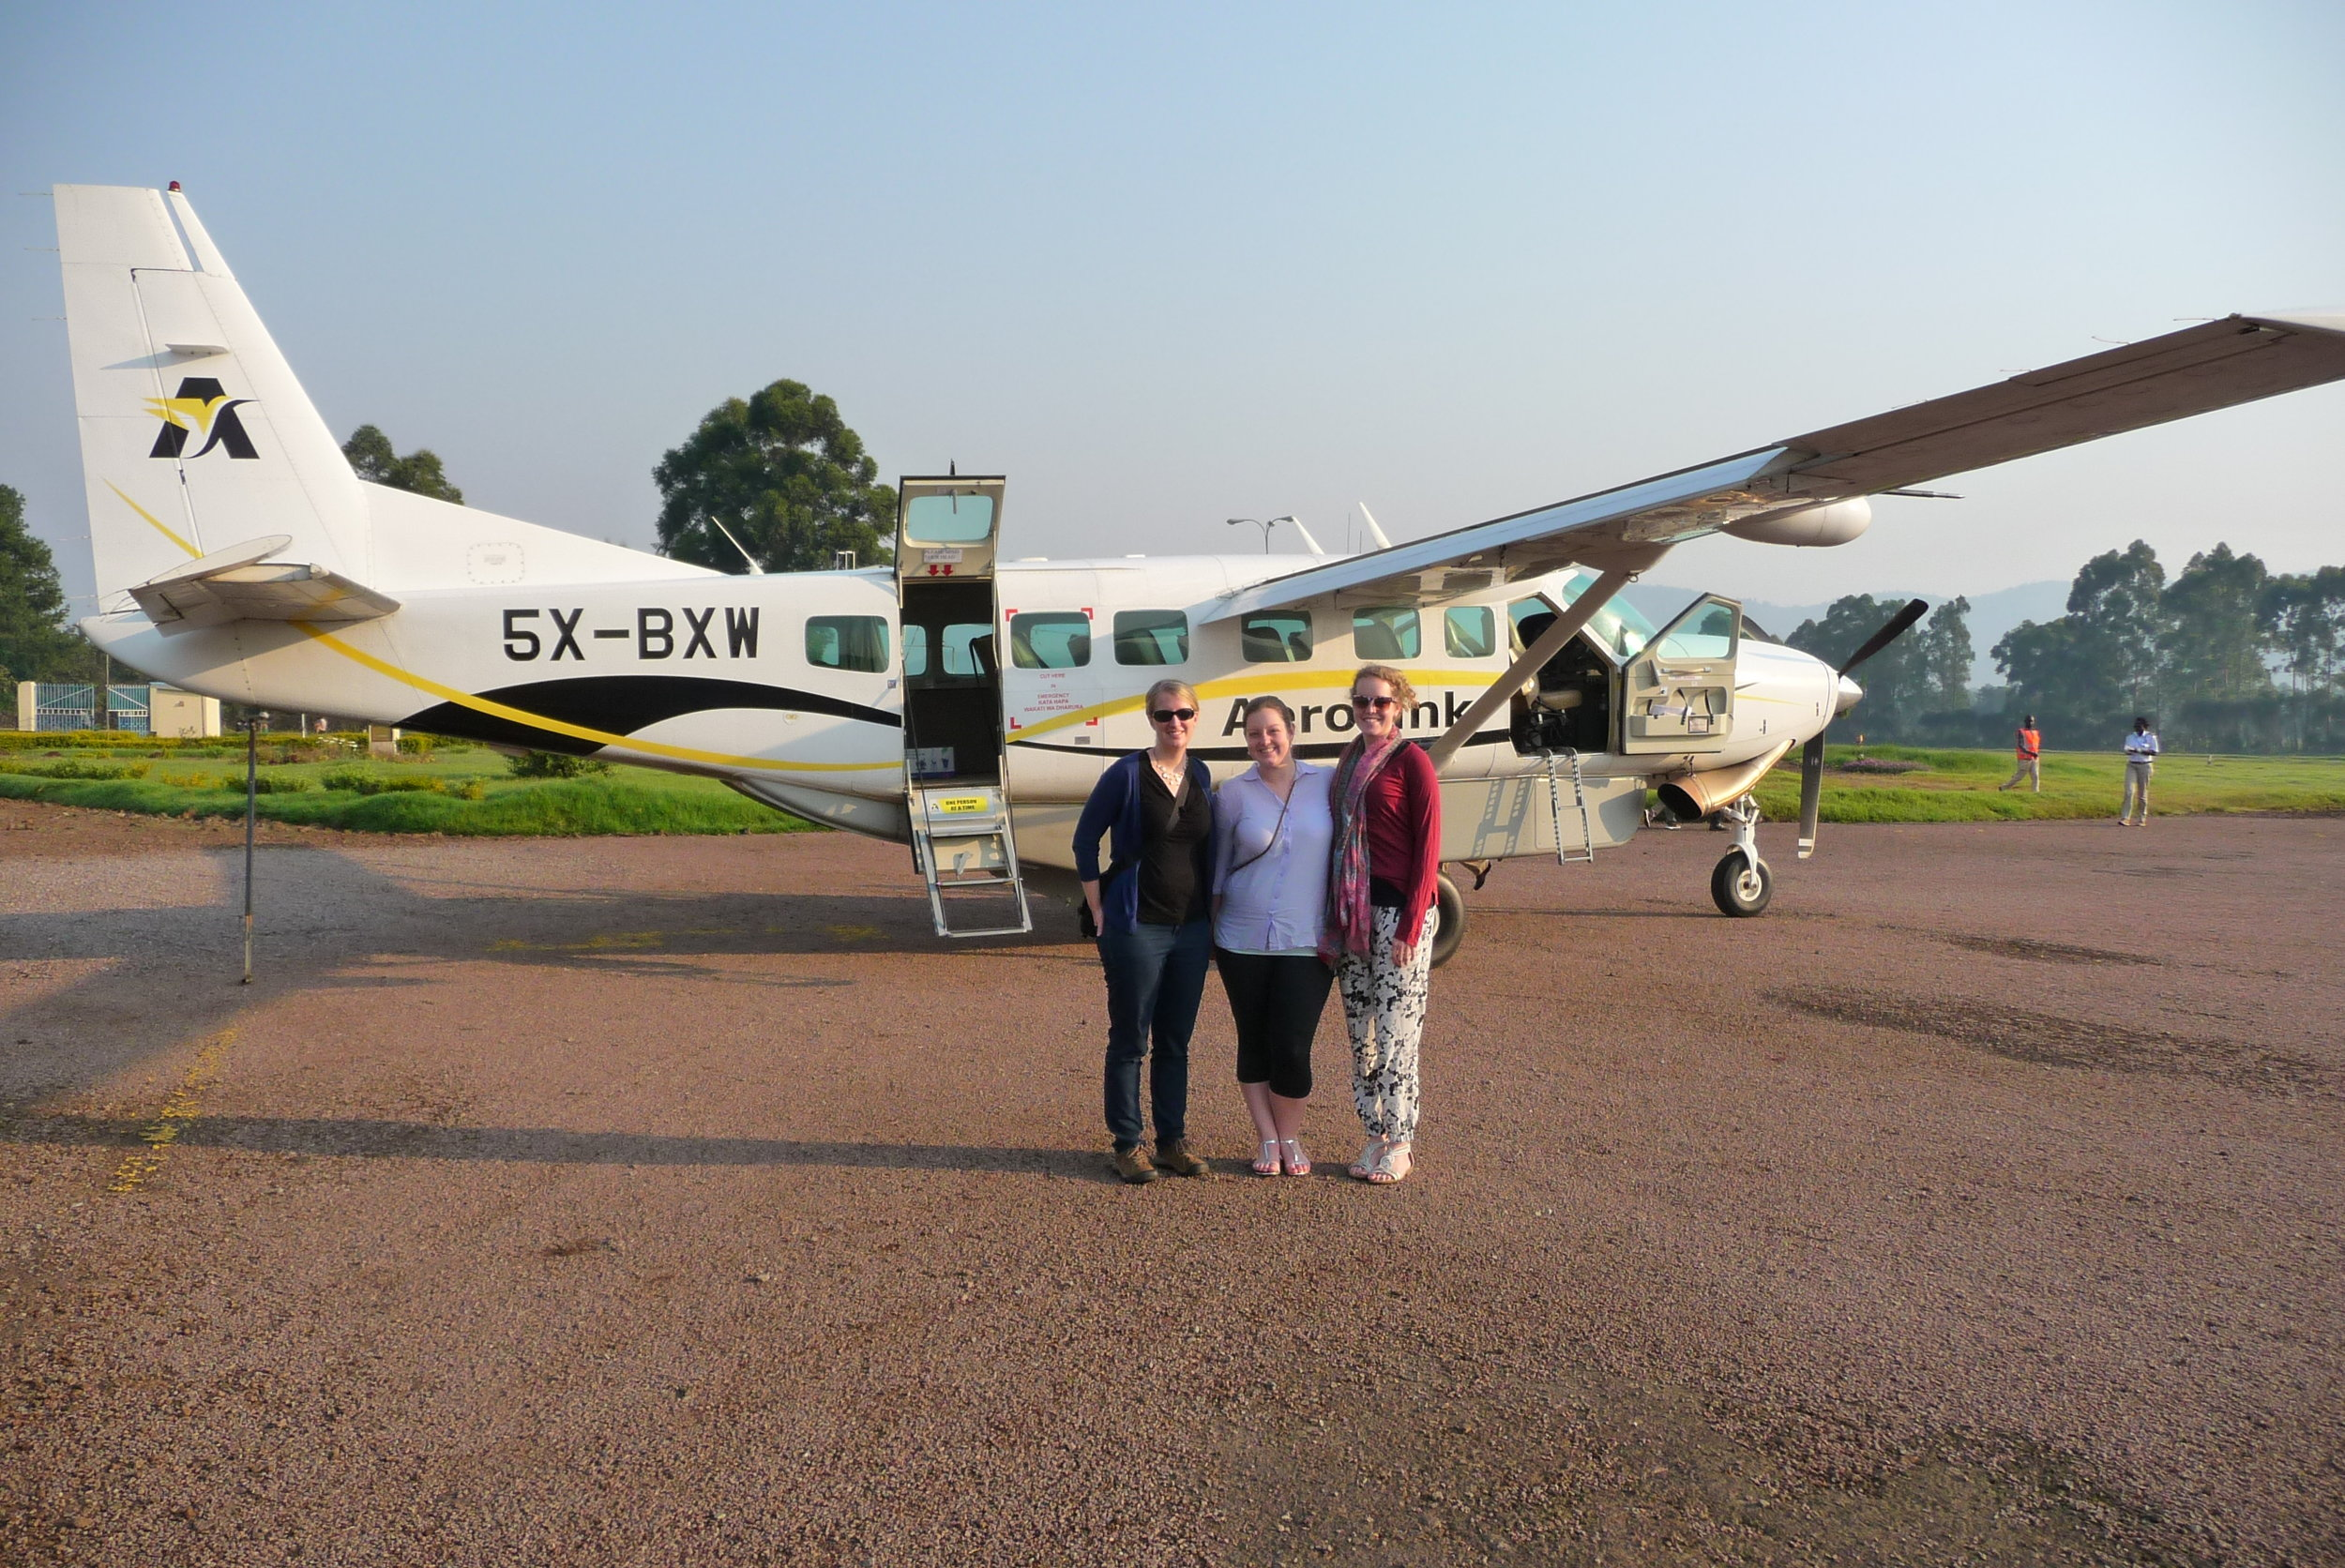 Sheri, Kate and Vivienne in front of a Caravan plane